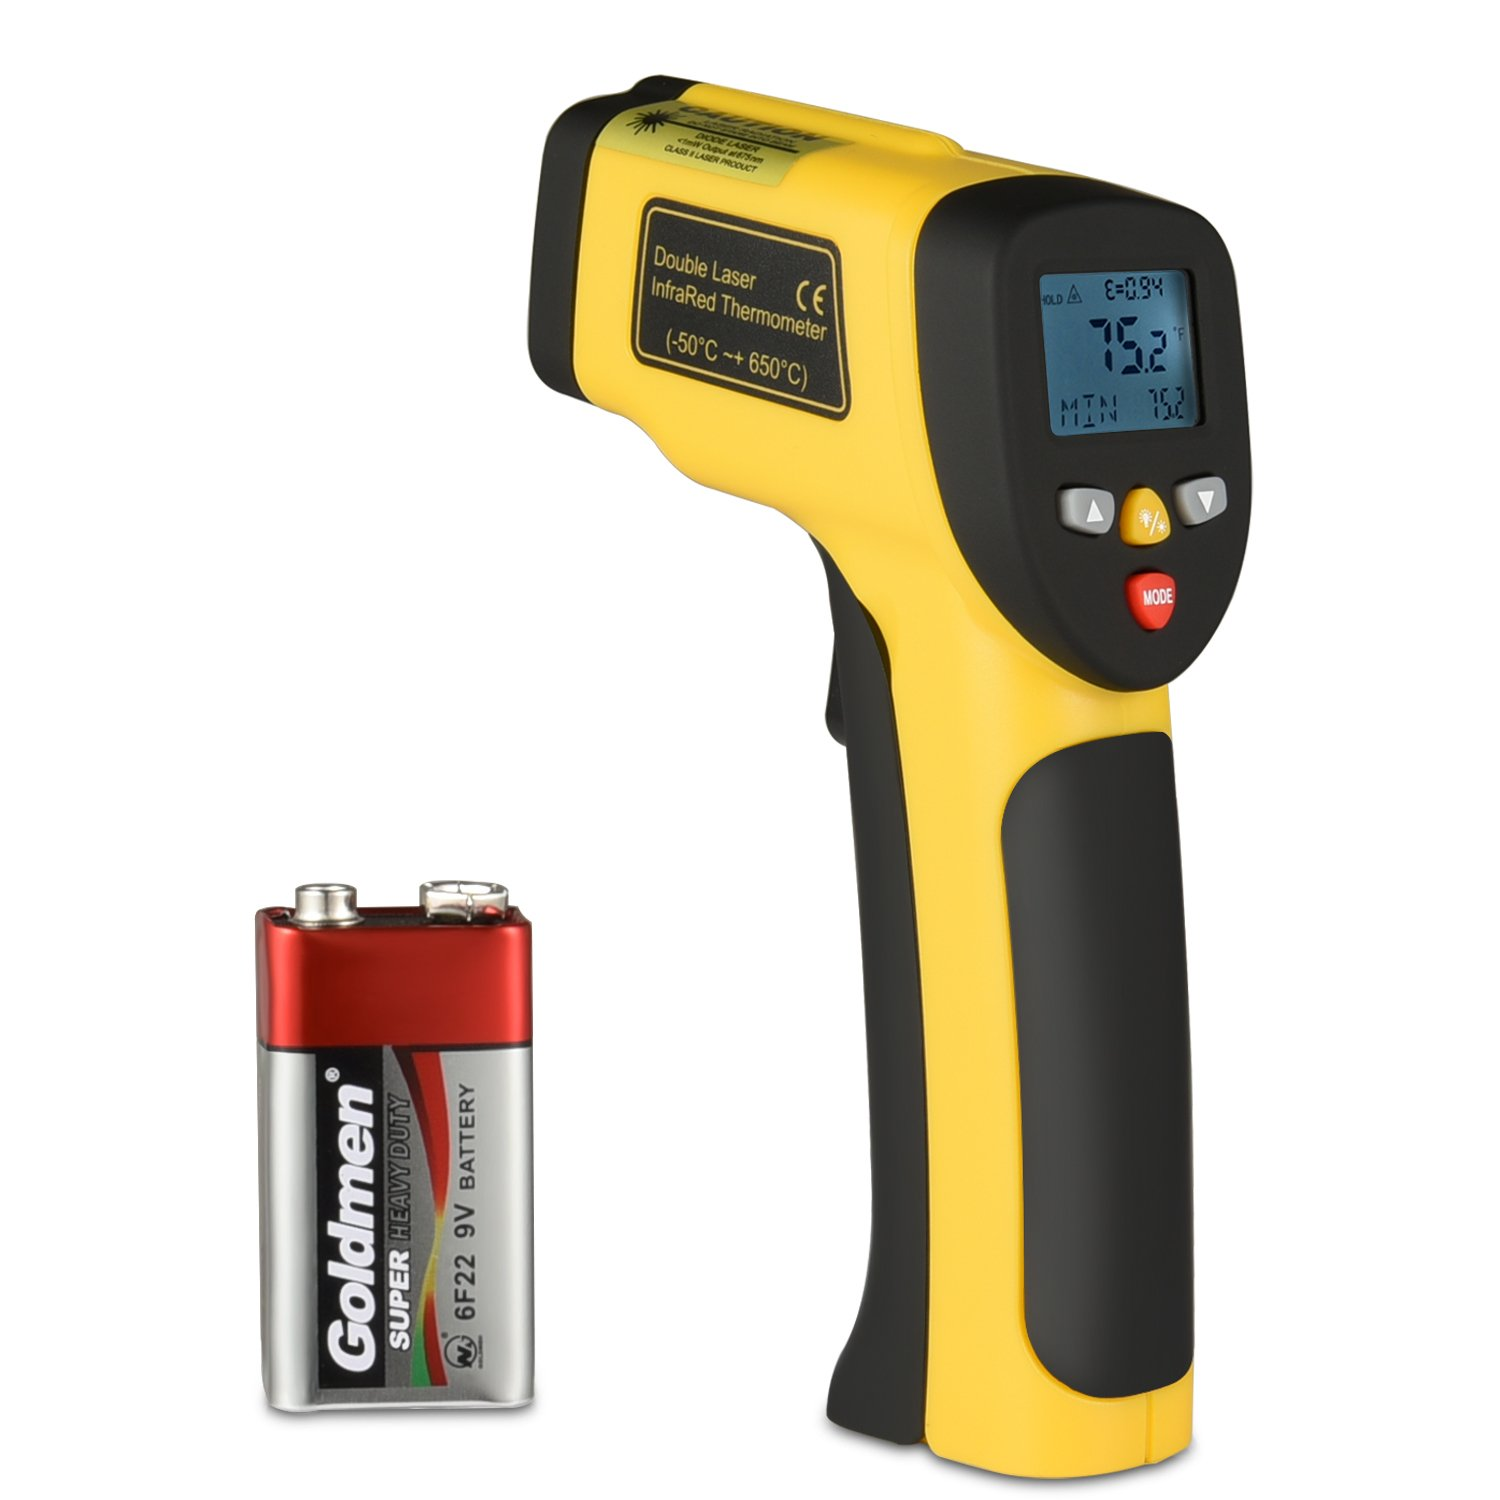 Infrared Thermometer Dual Laser Thermometer Temperature Gun Non-contact Surface IR Thermometer with Adjustable Emissivity -58°F to 1202°F Instant Read Digital Thermometer, Battery Included (Orange)